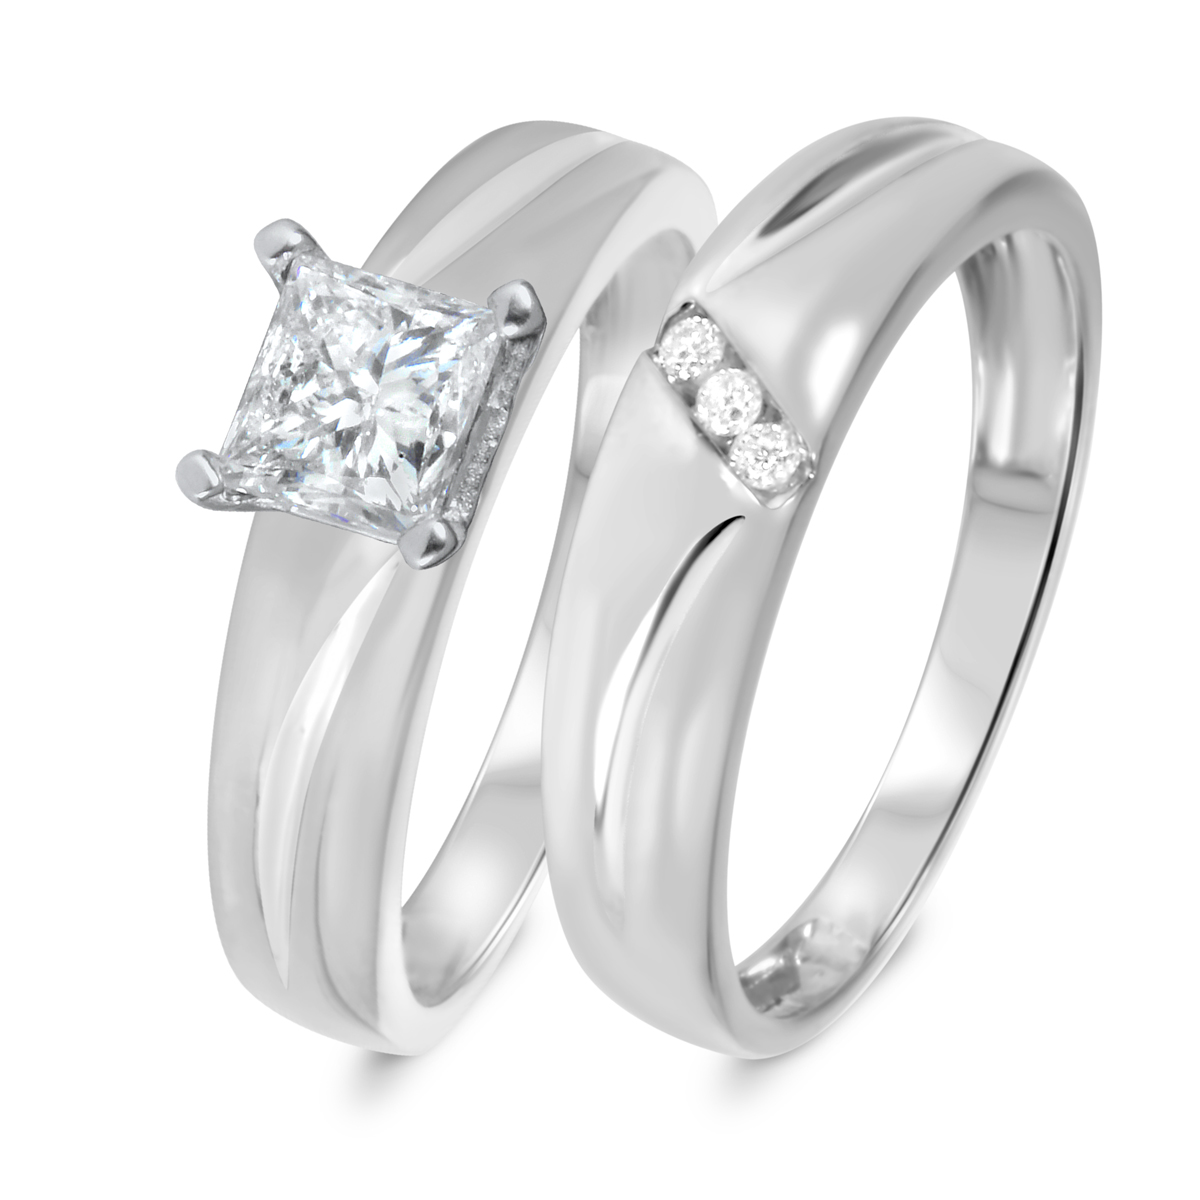 3/4 CT. T.W. Diamond Women's Bridal Wedding Ring Set 10K White Gold